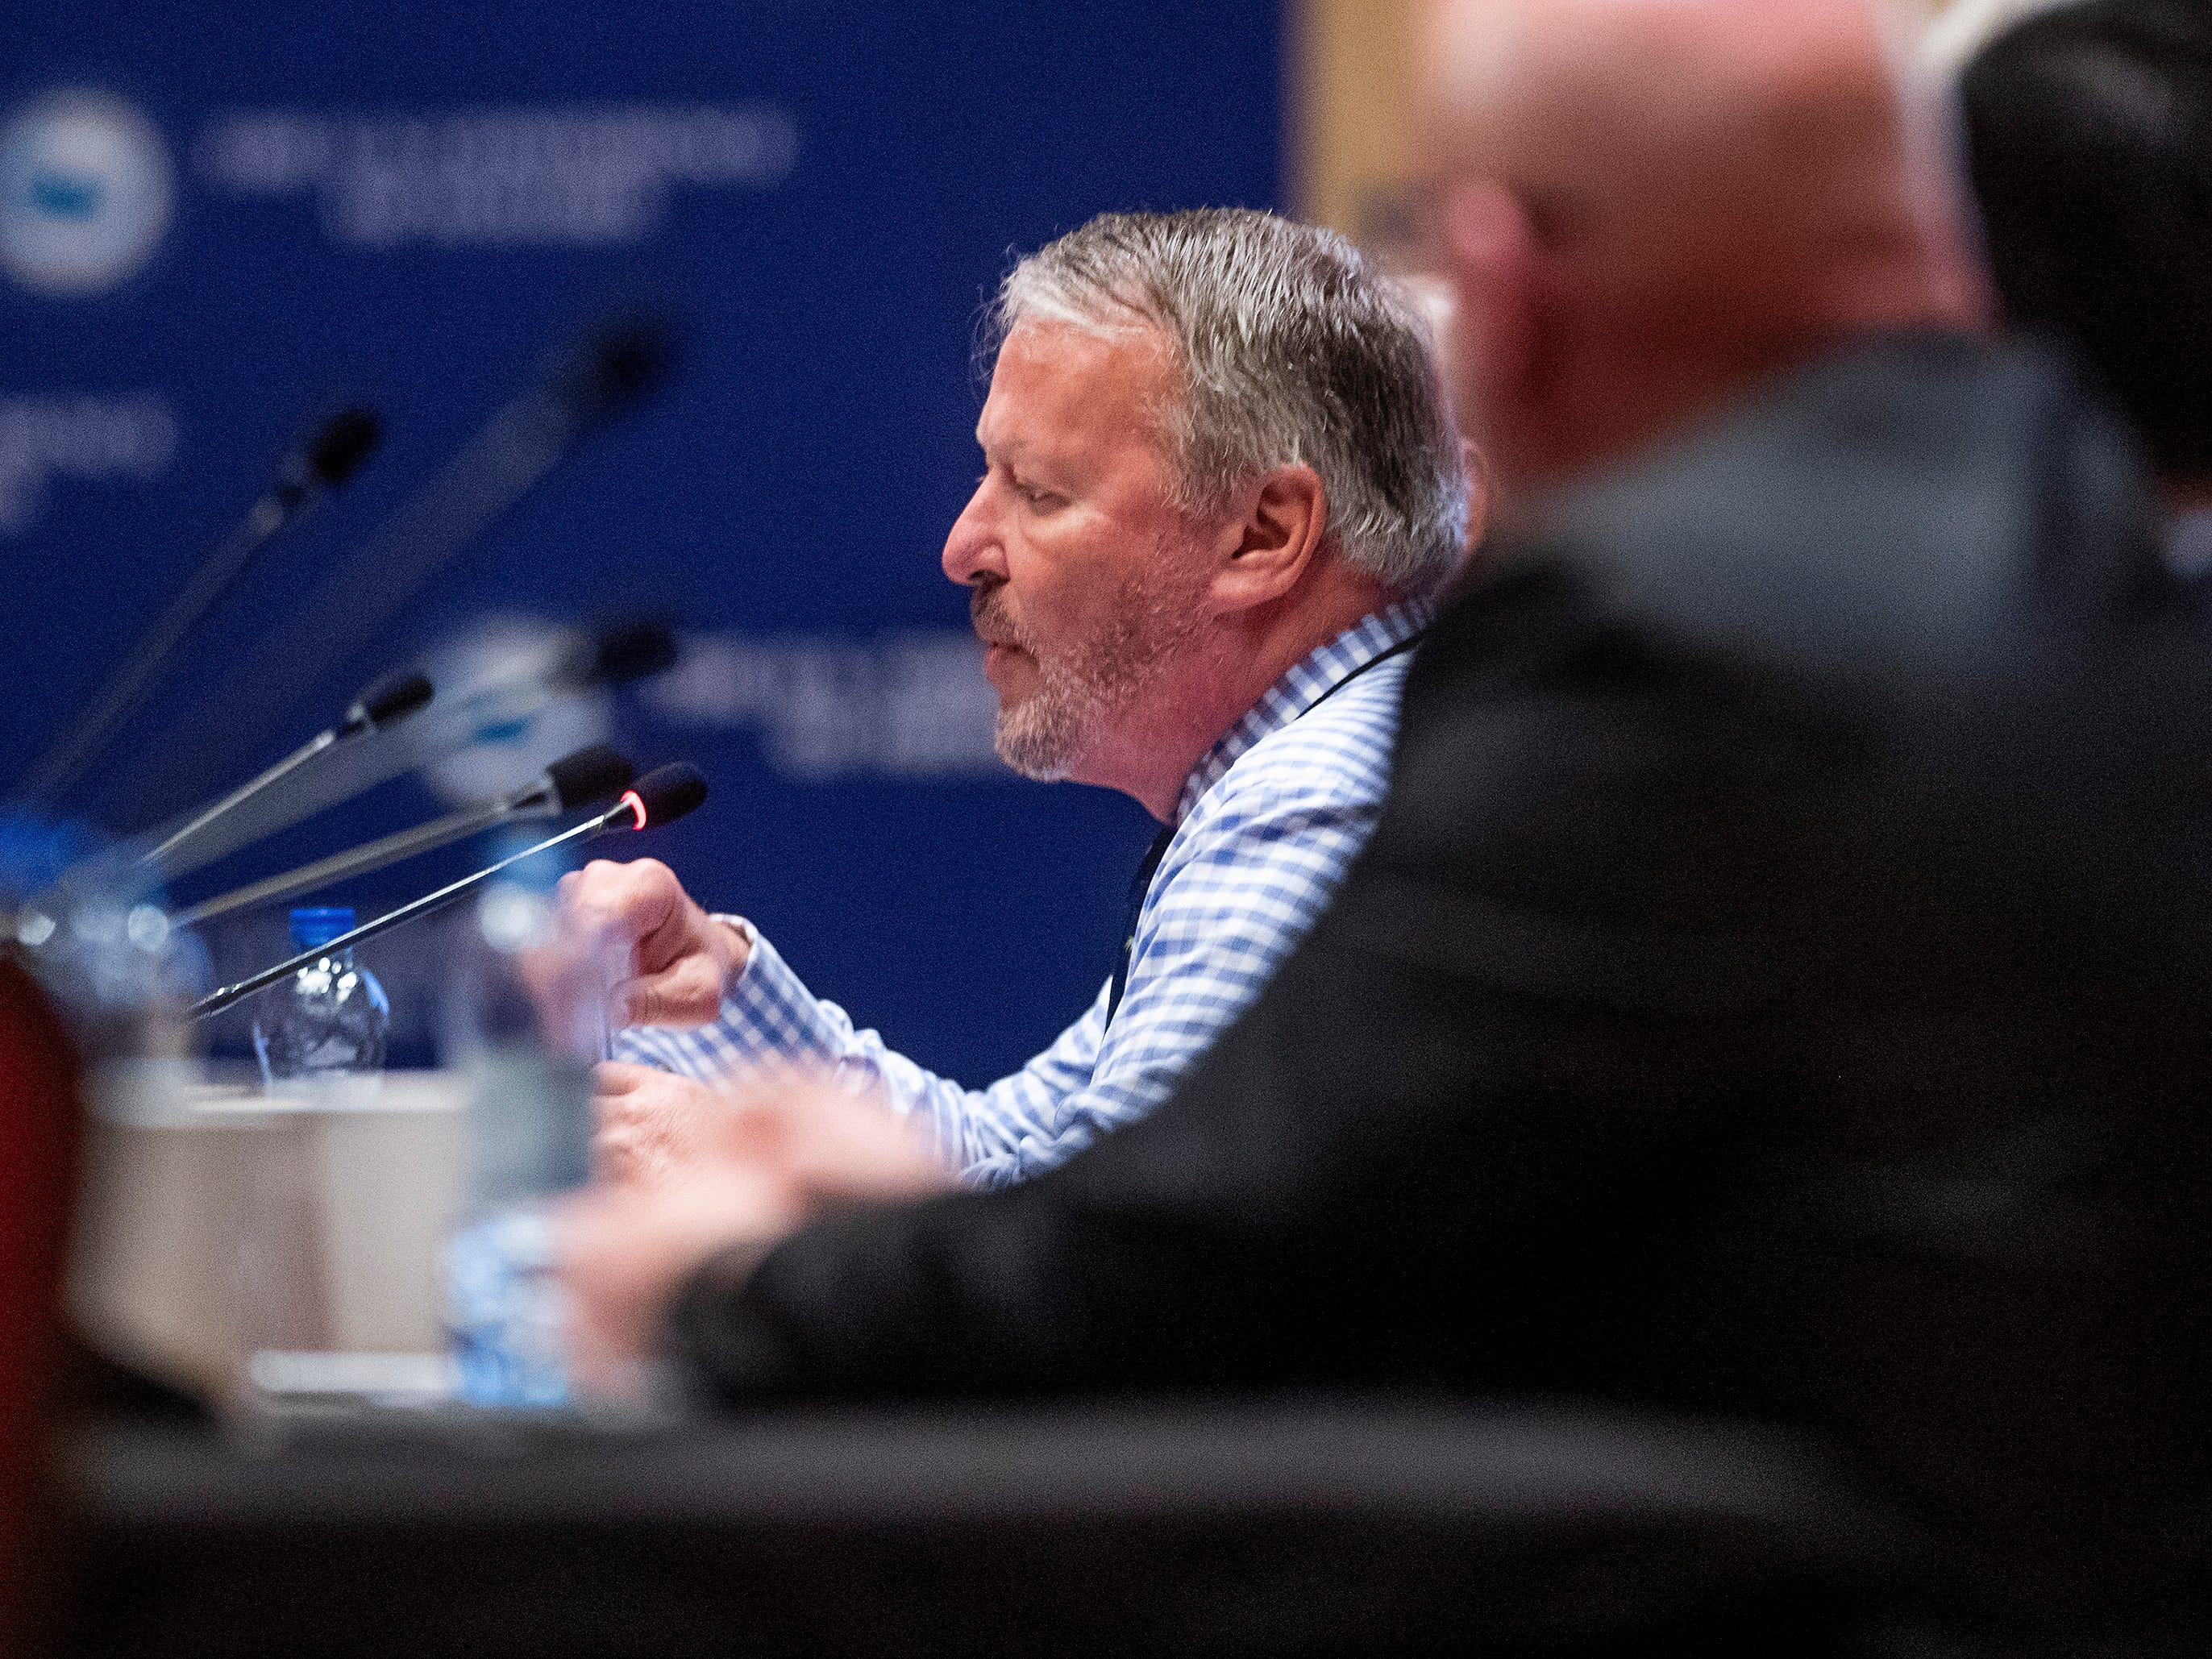 Orlando Mayor Buddy Dyer speaks during a summit of the U.S. Conference of Mayors in Montgomery, Ala., on Wednesday November 14, 2018 to address extremism, bigotry and divisiveness.